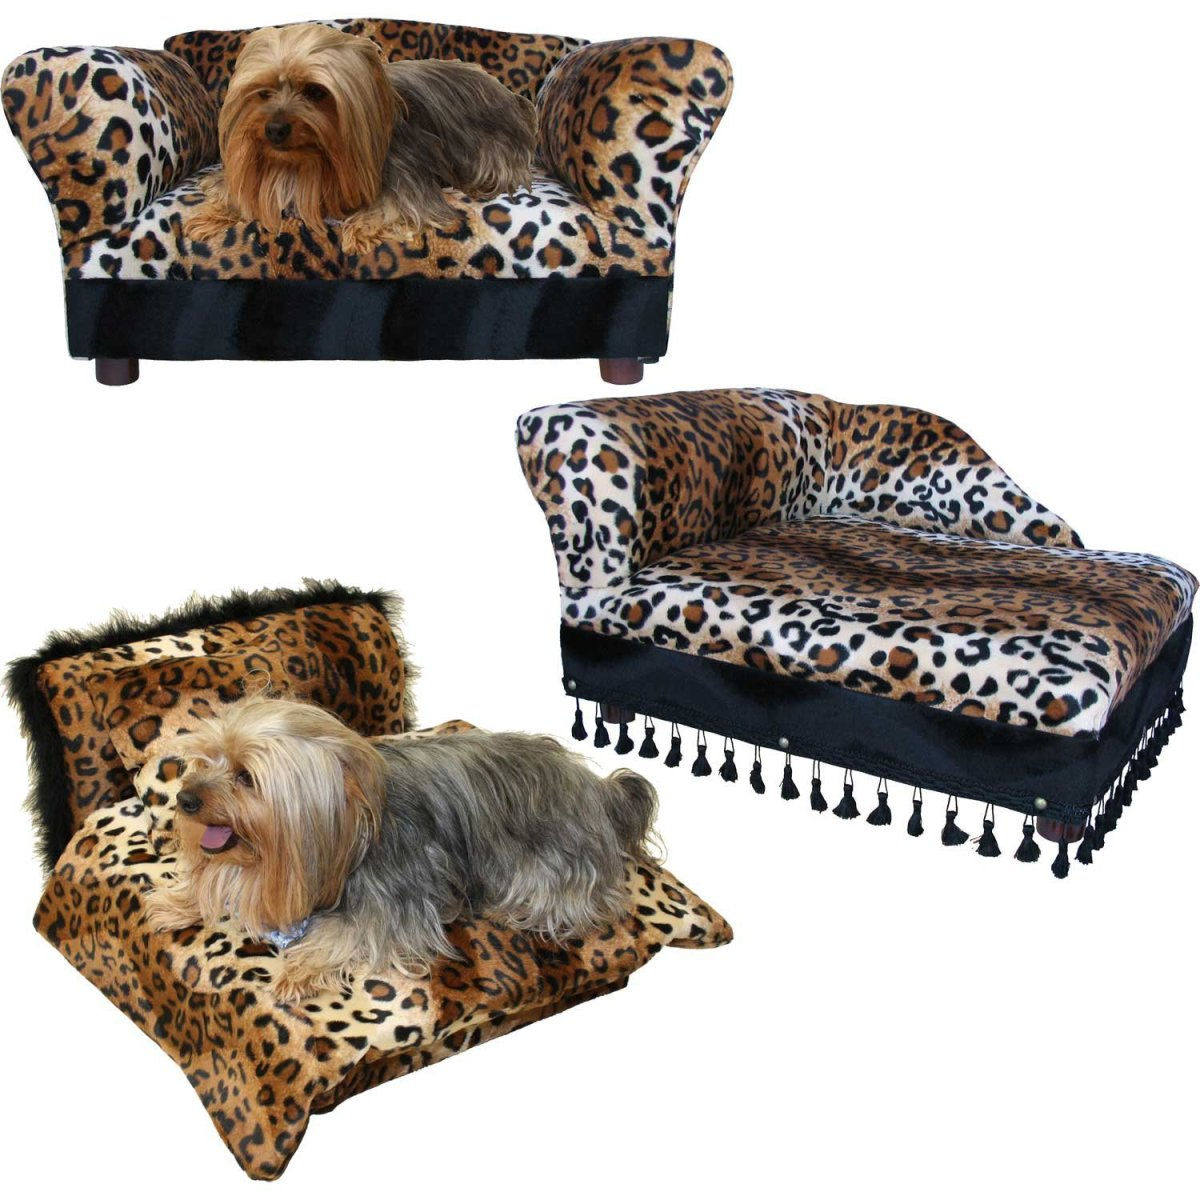 Pet Sofa Chaise and Bed Combo in Leopard Print